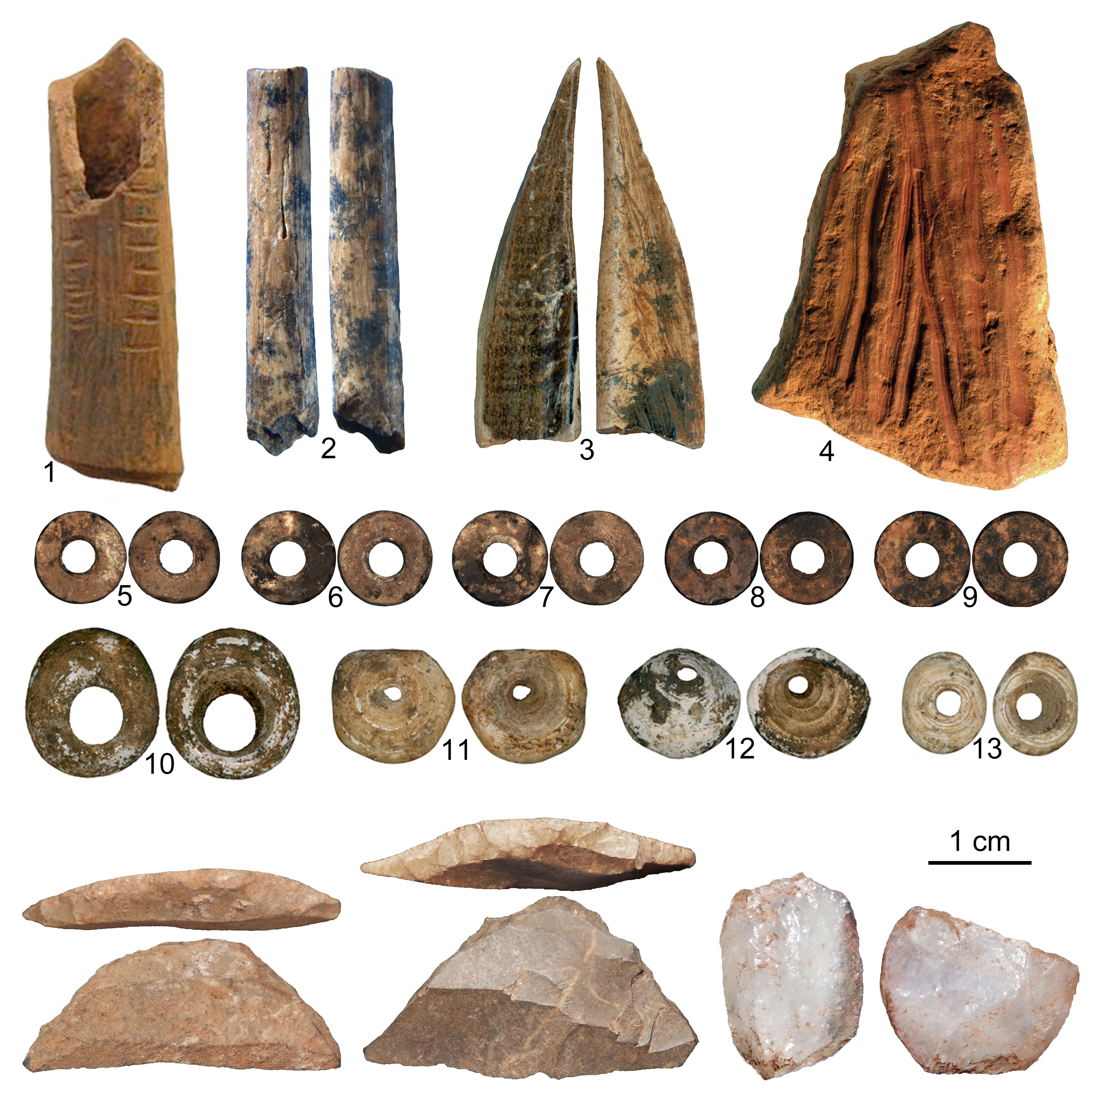 Items found in Panga ya Saidi cave.<br/>1. A decorated bone 2. A broken bone arrow point <br/>3. An awl made of tusk <br/>4. An ochre crayon.<br/>5-9. Ostrich egg shell beads, 10-13 are marine shell beads. Other items: miniaturized stone tools.  Credit Francesco d&#039;Errico and Africa Pitarch Marti.